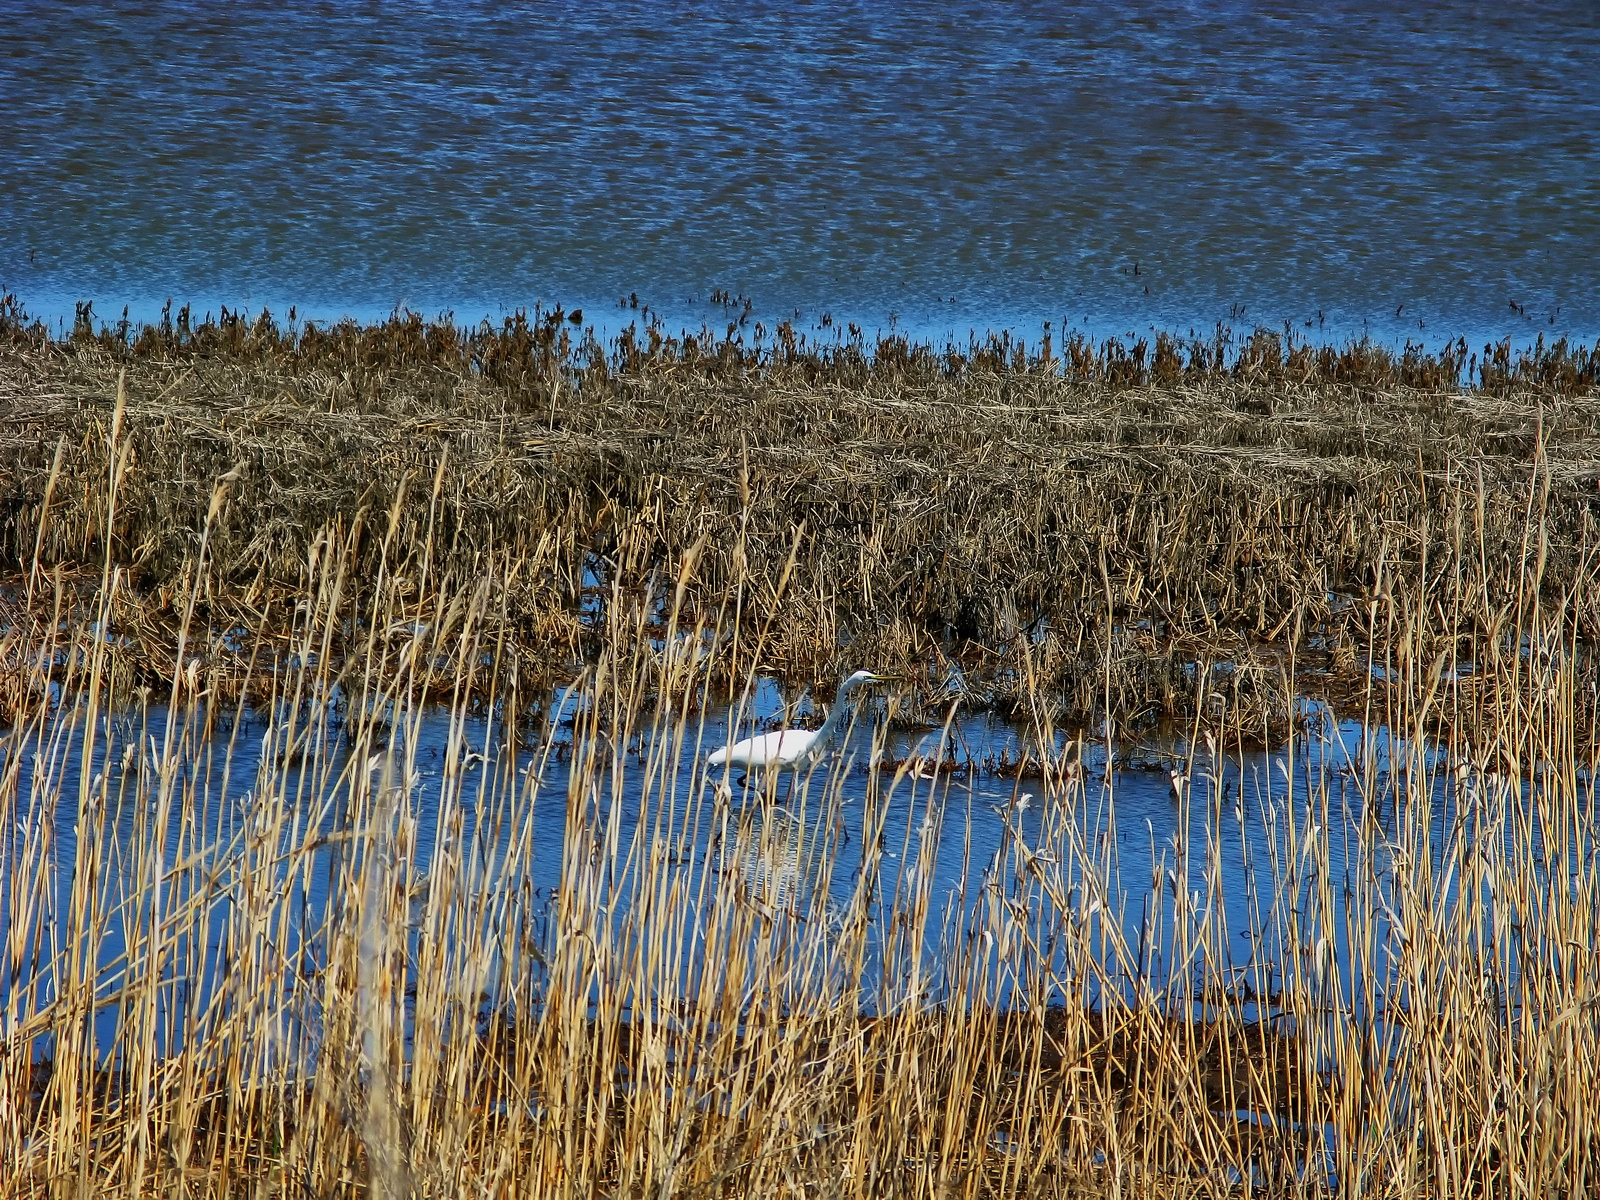 new jersey, oceanville, edwin b forsythe national wildlife refuge, great egret, crane, illusion,, photo